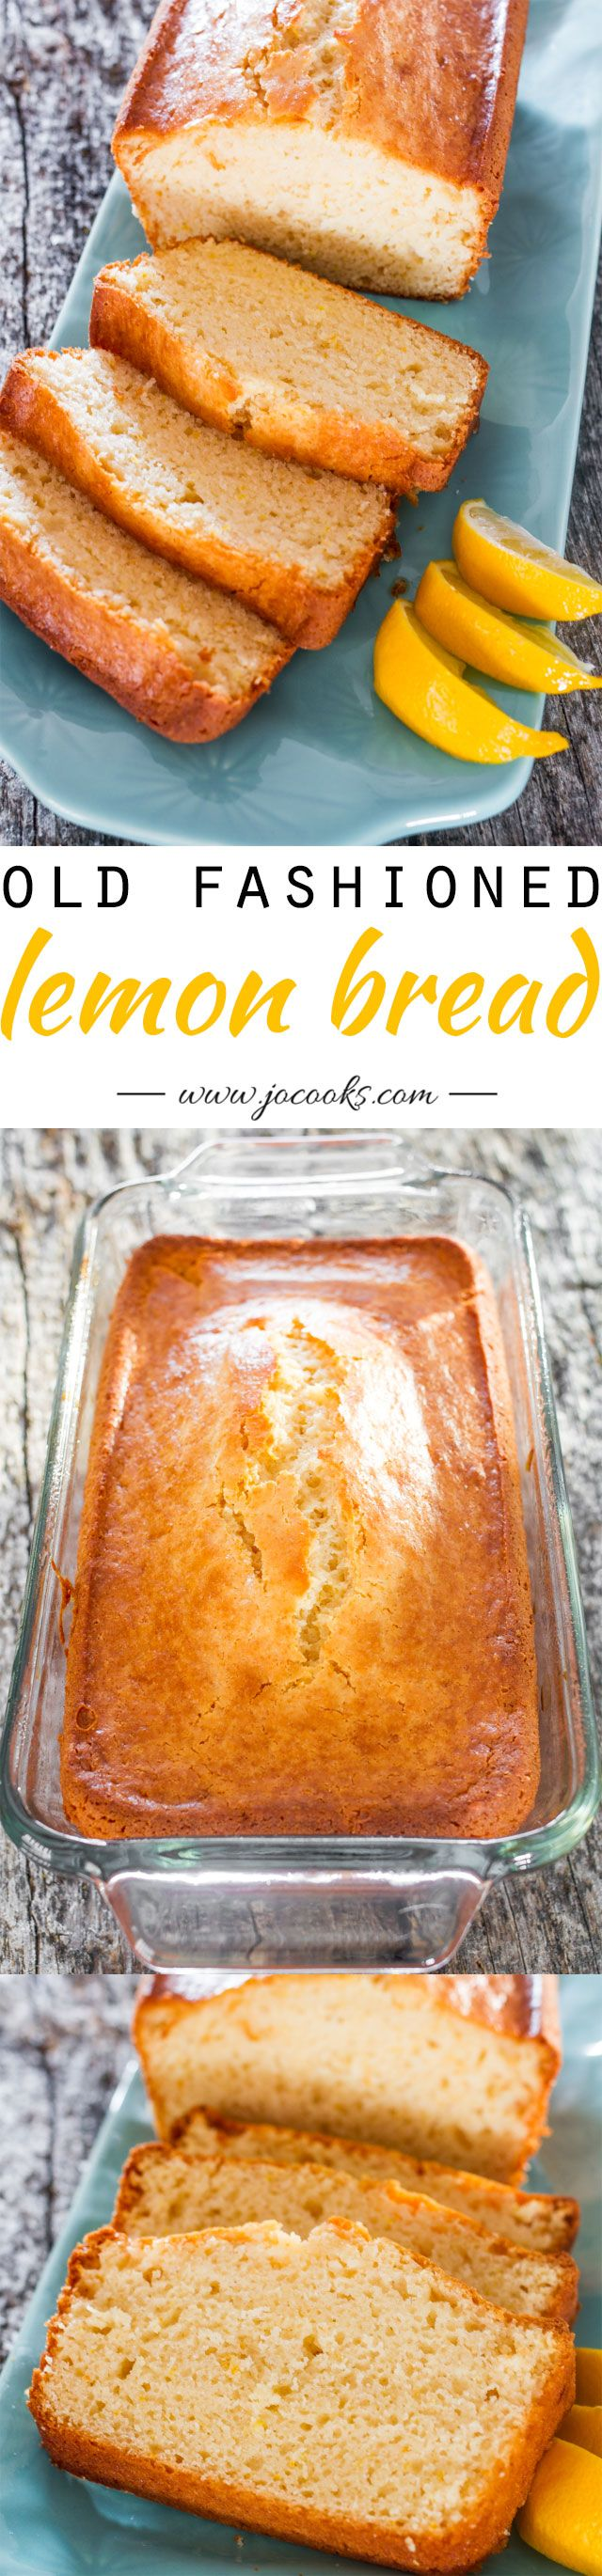 Old Fashioned Lemon Bread - An incredibly delicious quick bread. Totally lemony and tasty and so easy to put together.